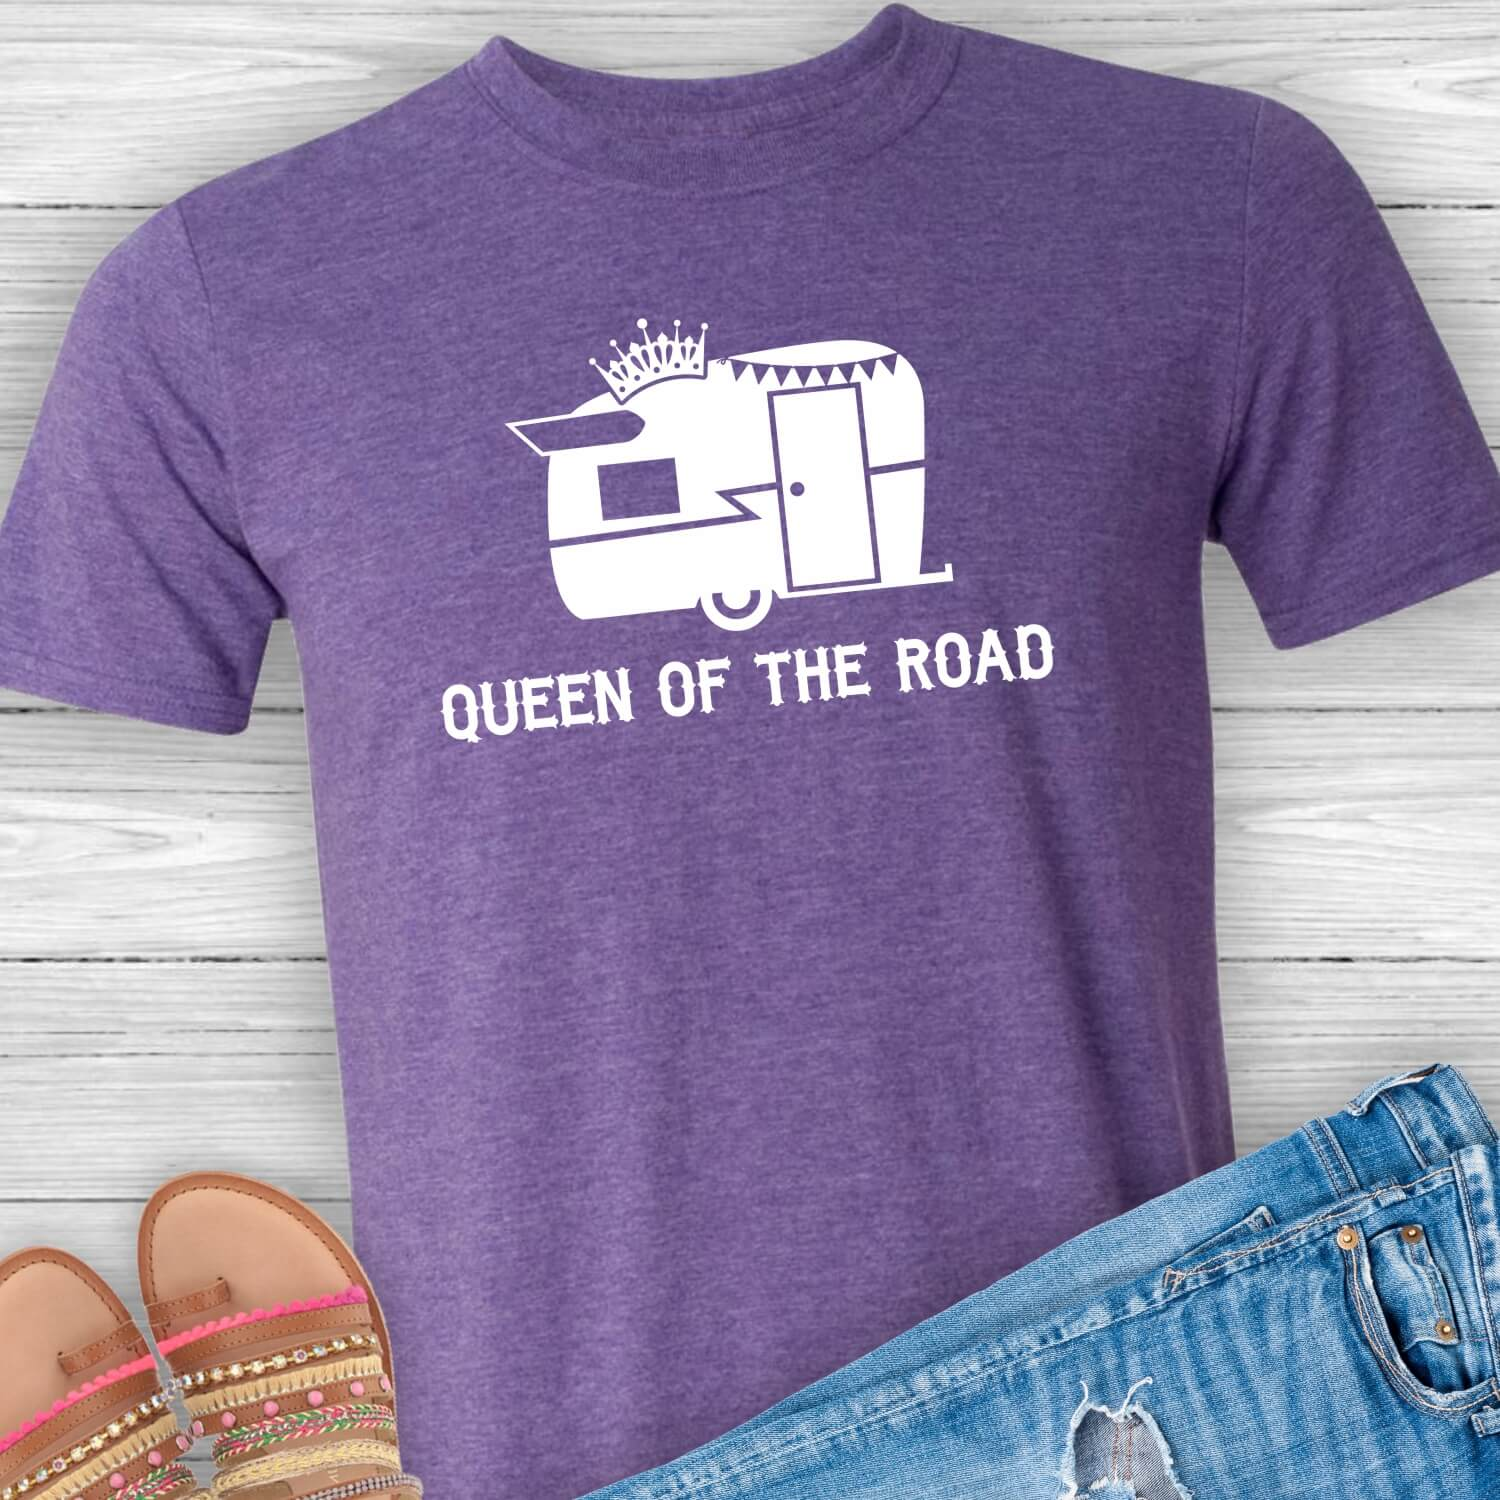 Queen-of-the-Road-Unisex-Tee